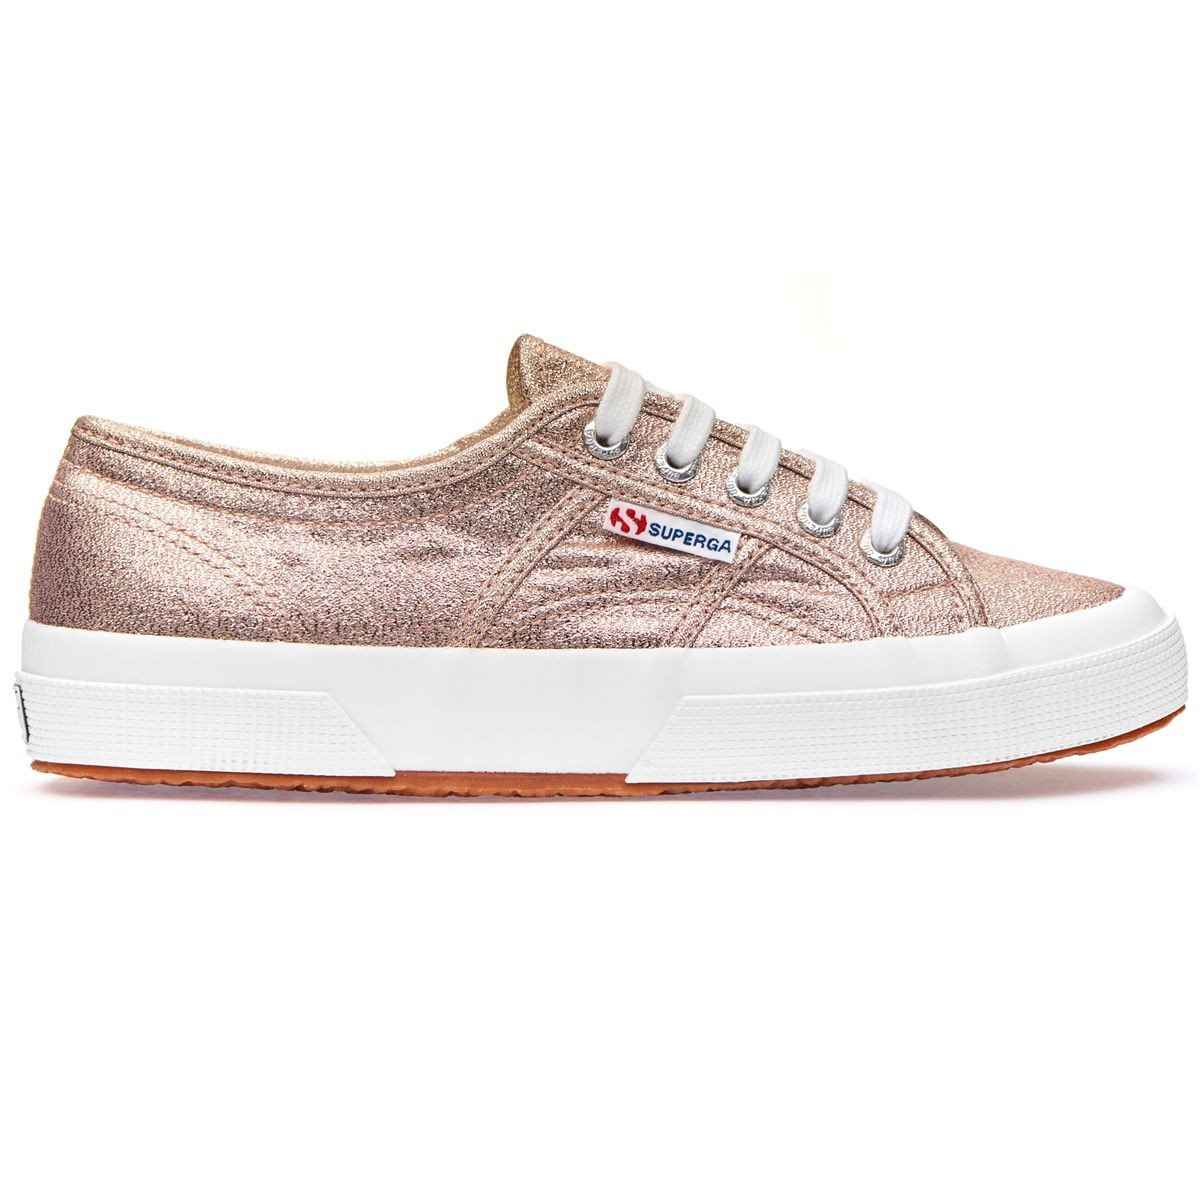 Van Fashion For Less 2750 Lamew Rose Gold Prijsvergelijk nu!